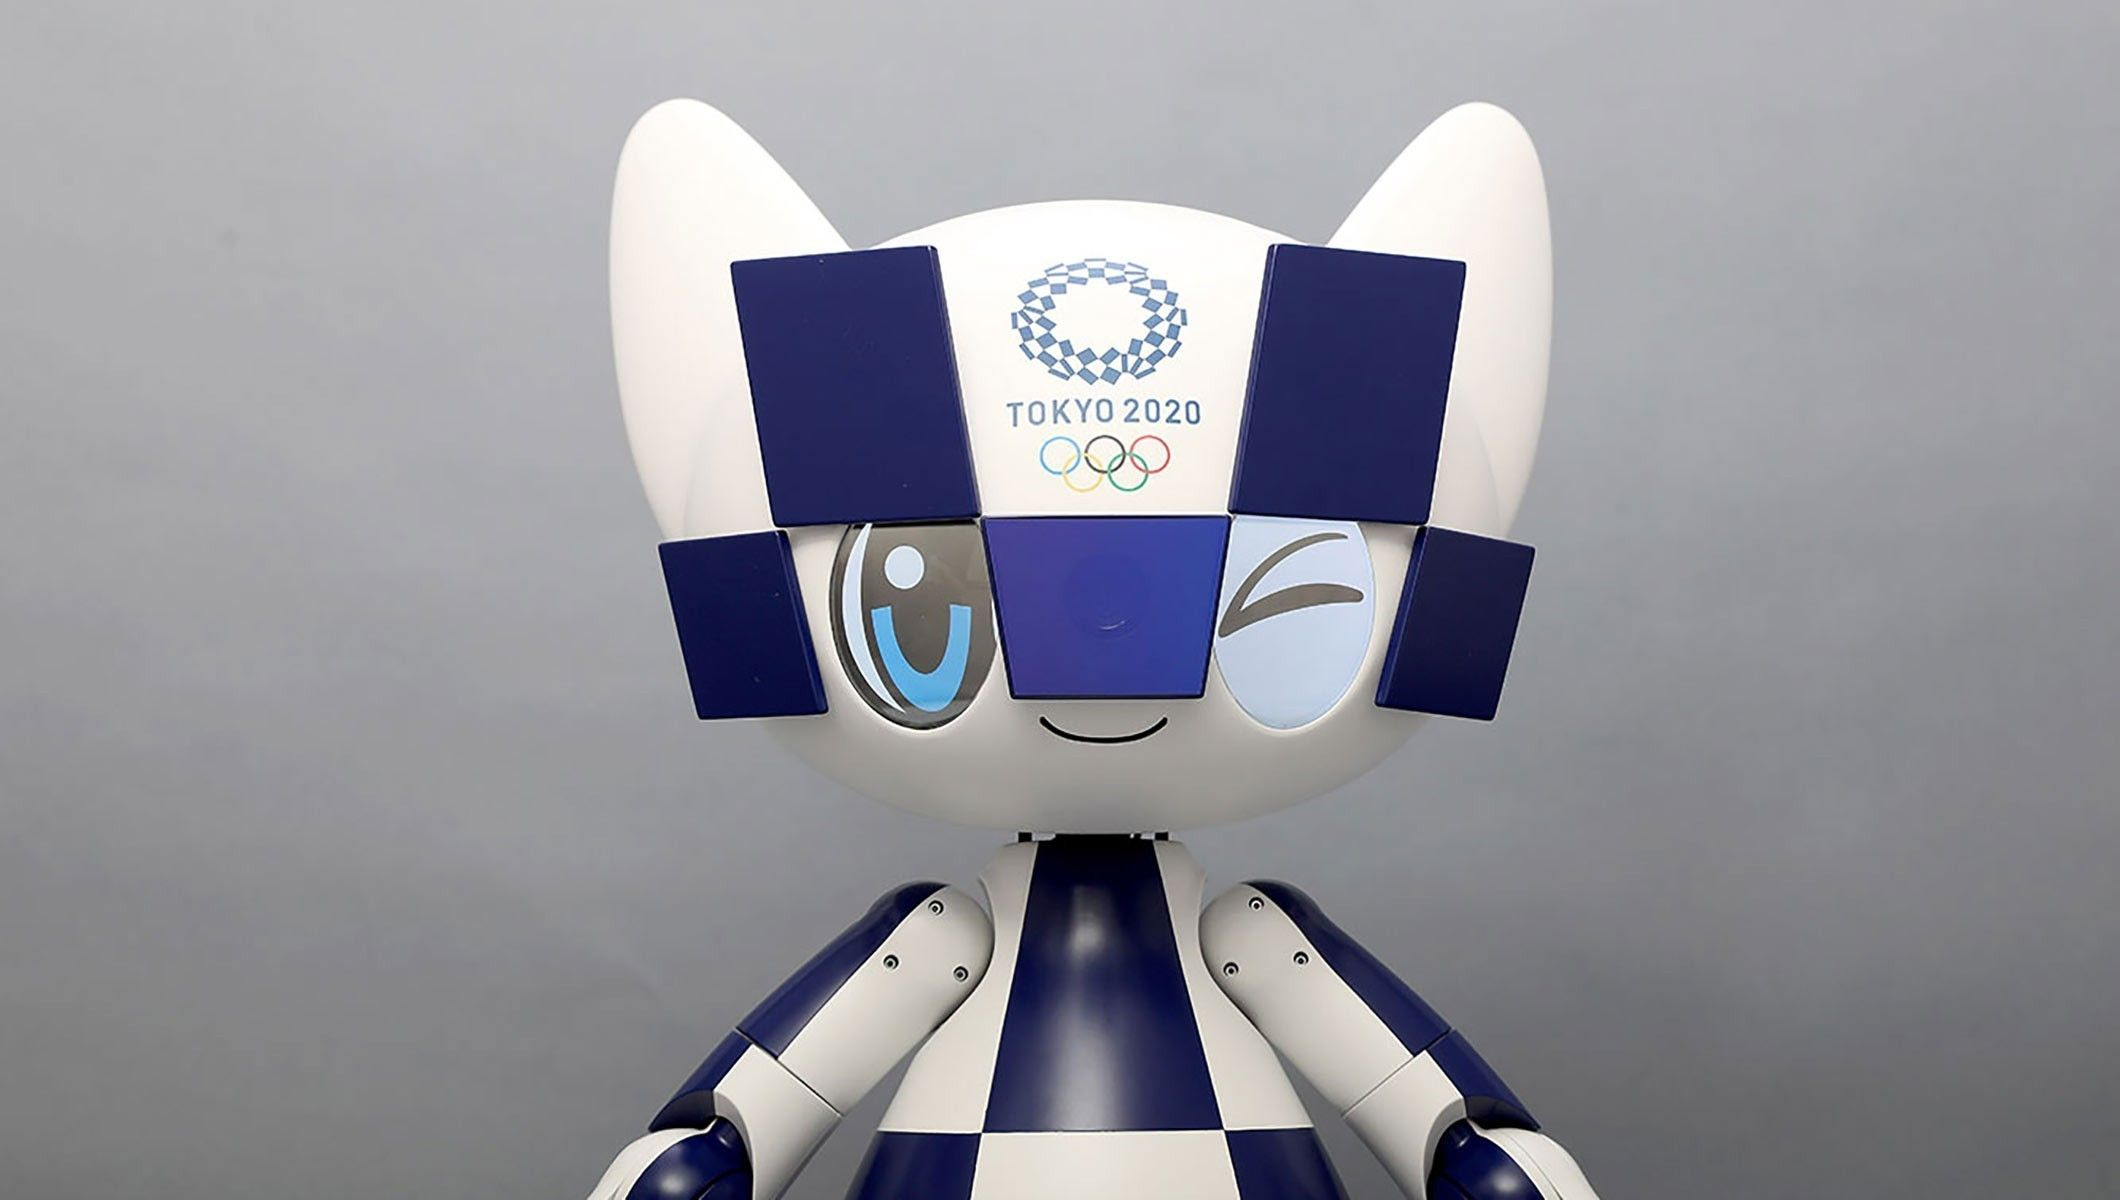 Olympics Robots What To Expect From The Tokyo 2020 Olympics Robotshop Community Tokyo 2020 Tokyo Tokyo Olympics